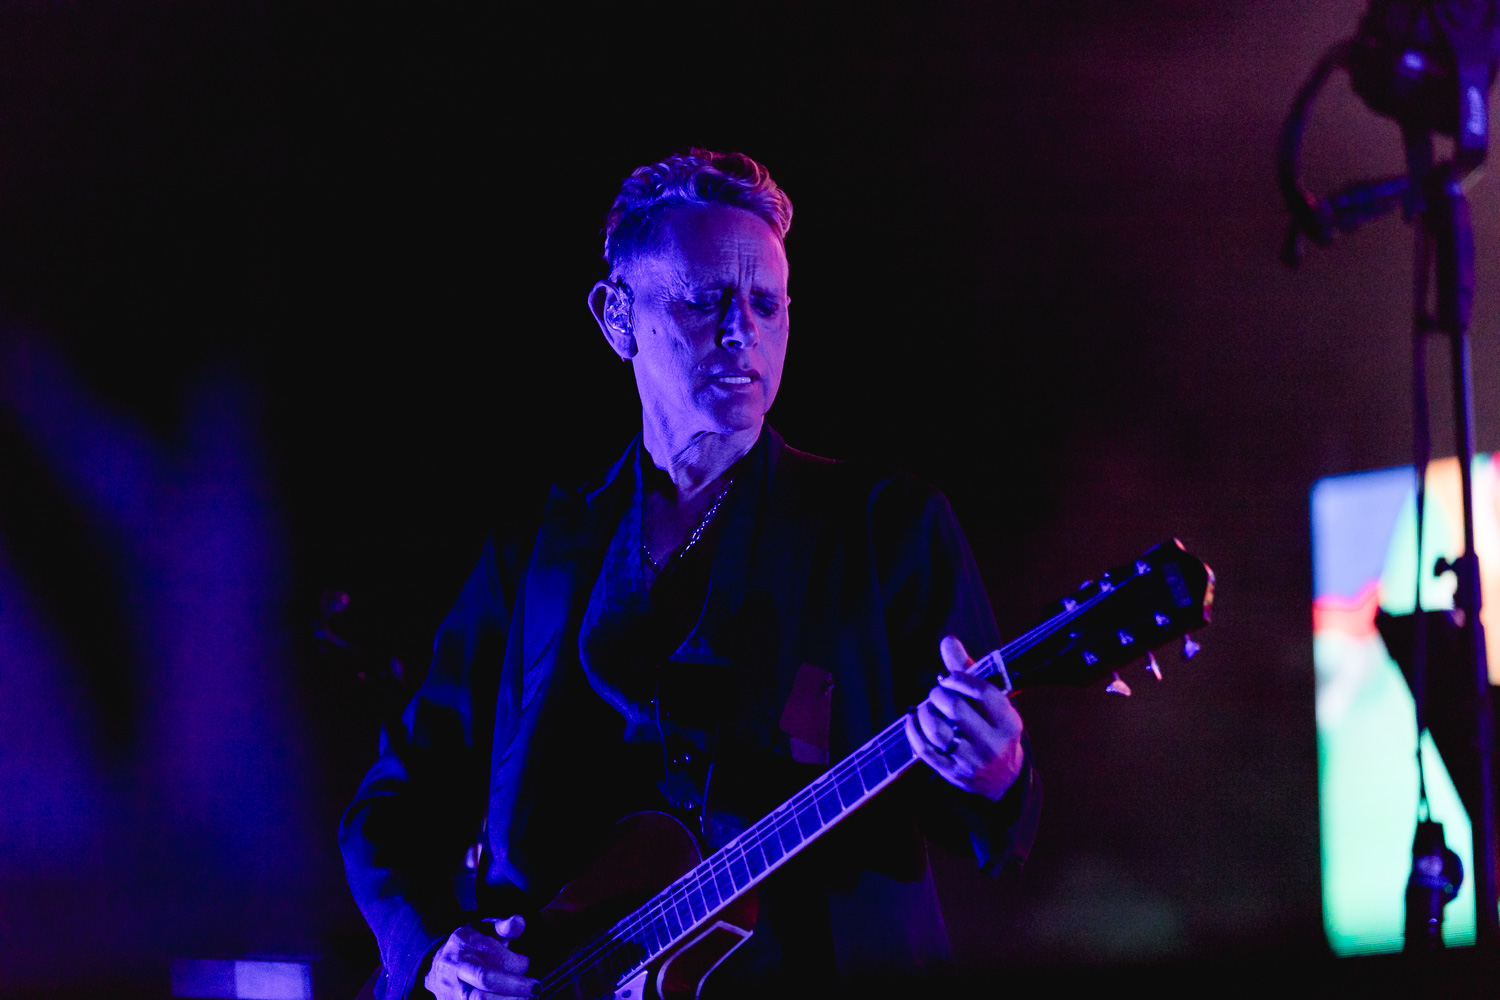 Martin Gore basks in the shadows onstage. Photo: Lmsorenson.net